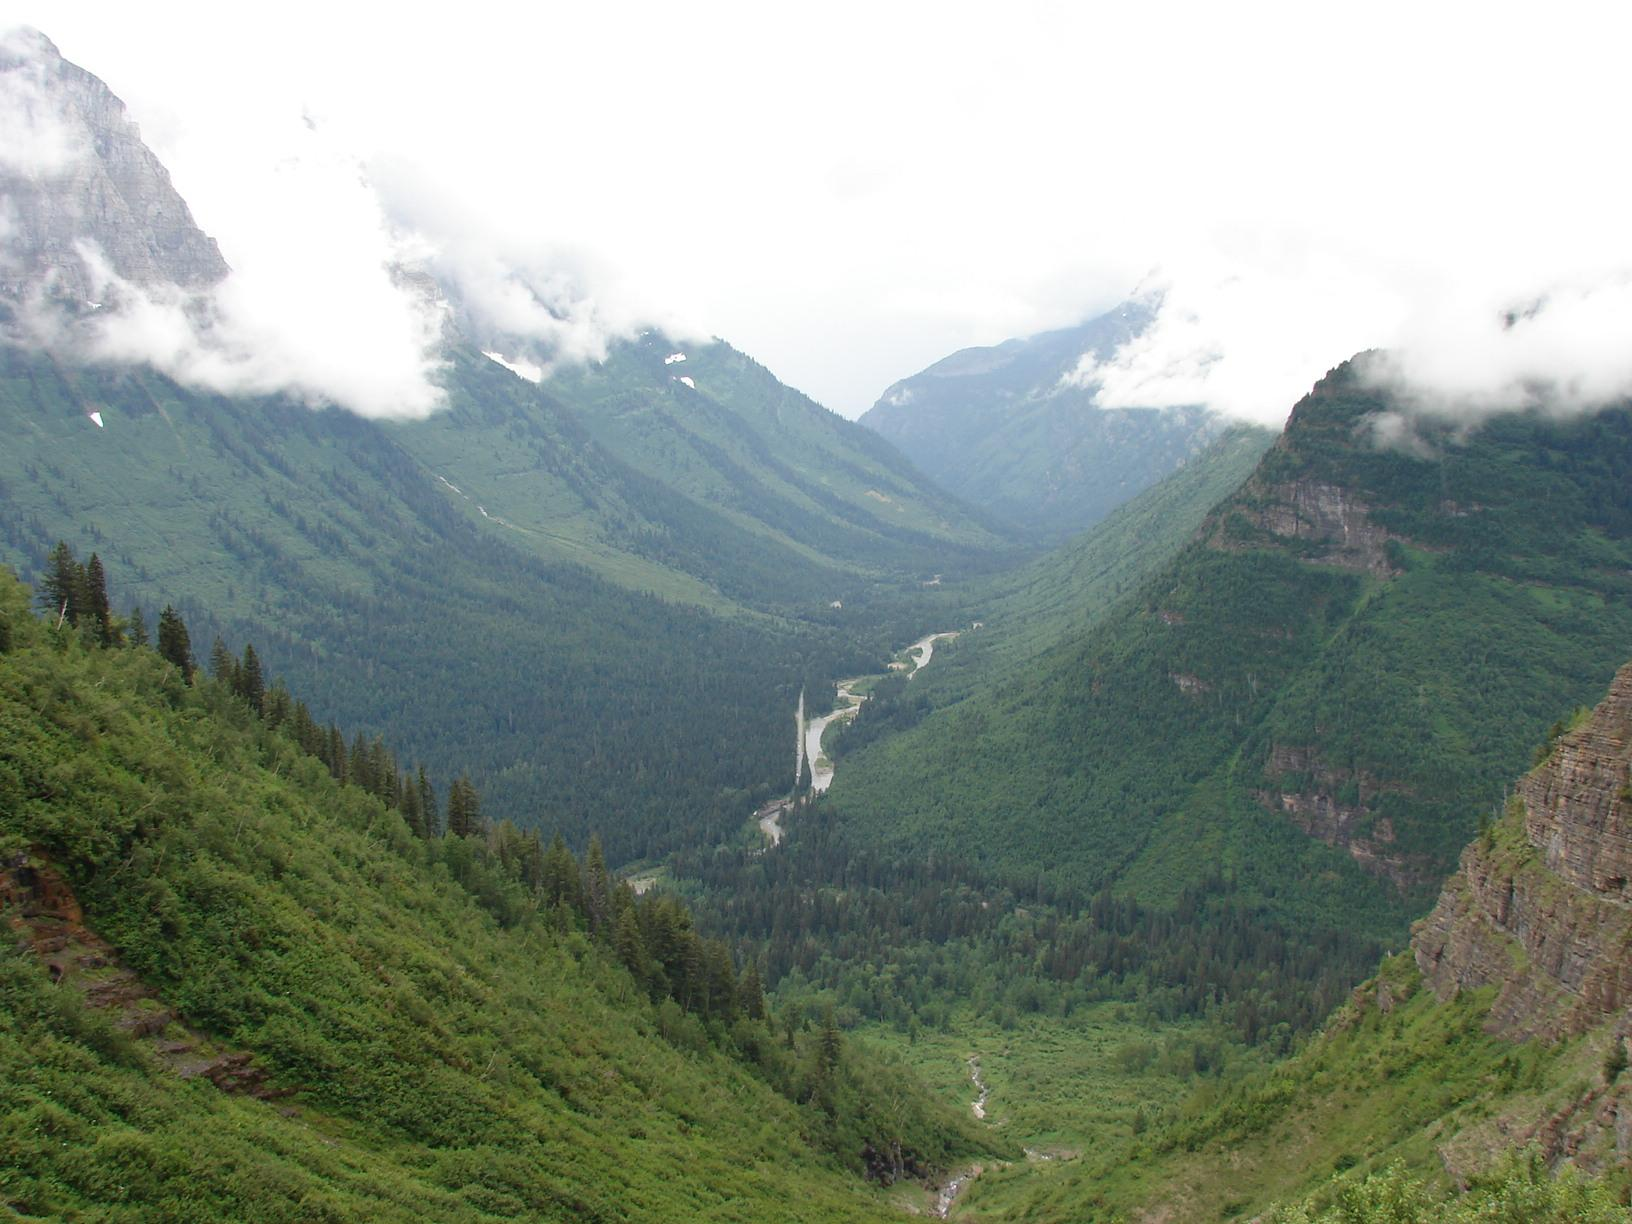 U-shaped glacial valley